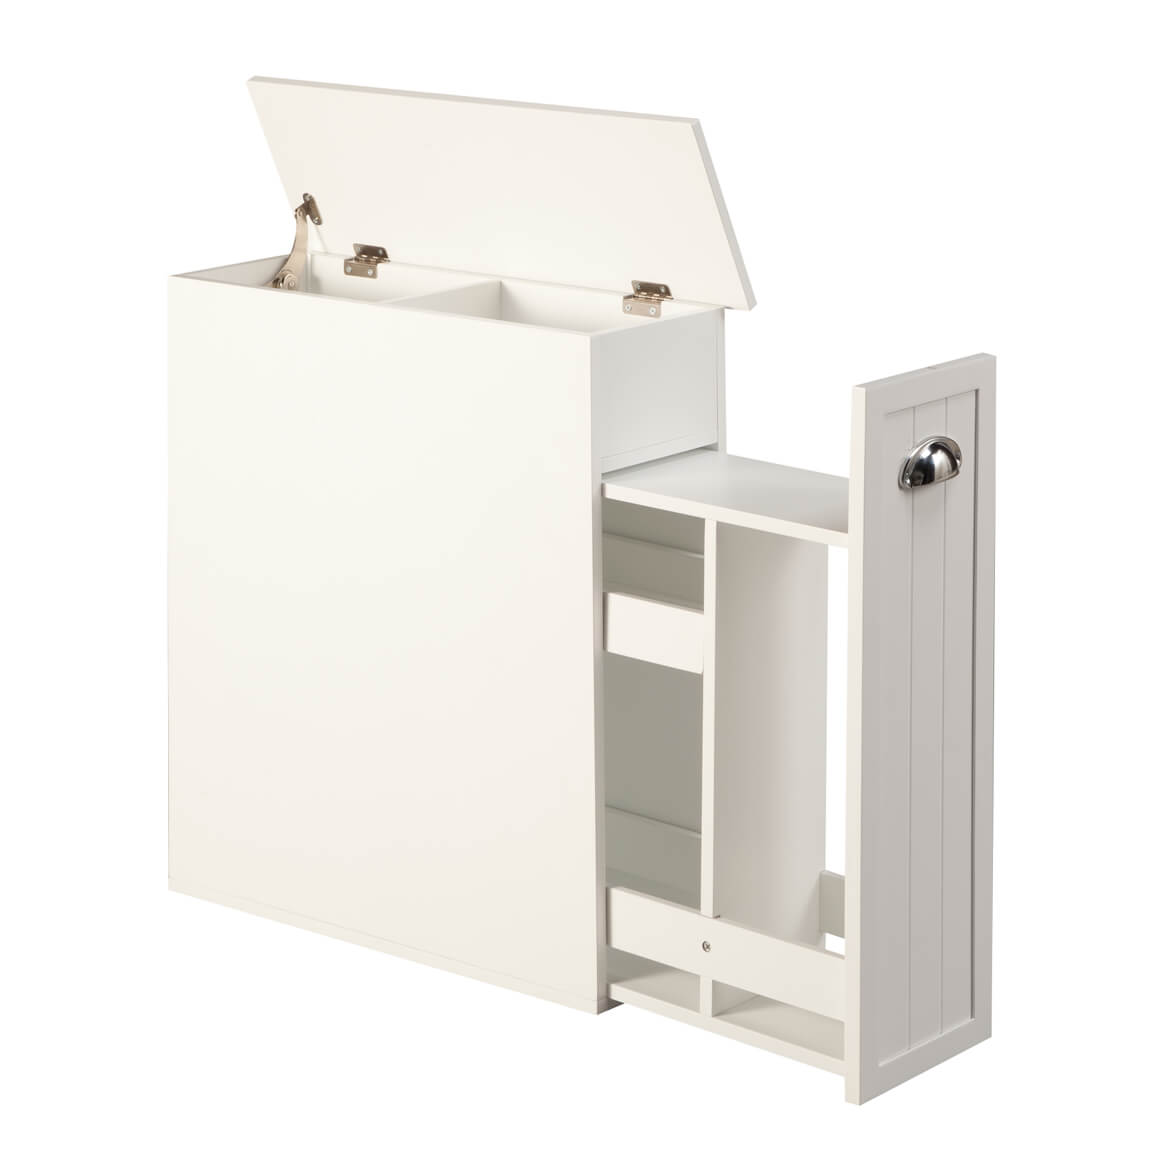 slimline bathroom wall cabinets slim bathroom storage cabinet by oakridgetm walmart 20435